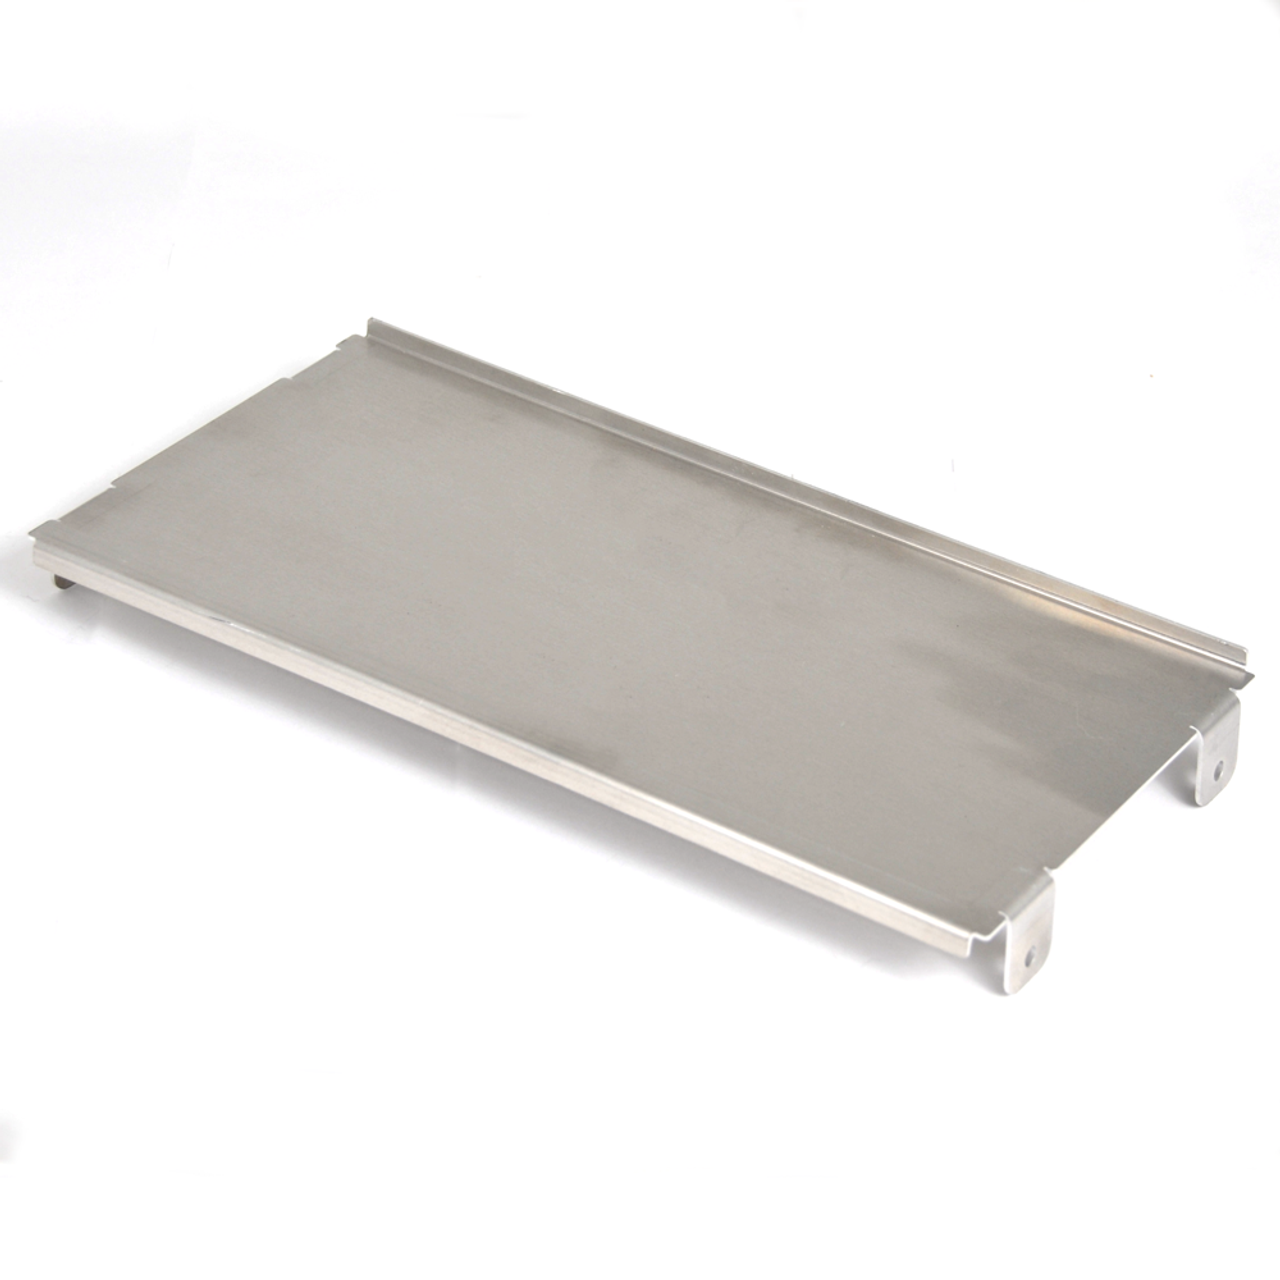 Glovebox Shelf Insert for RHD 60/62 Series Land Cruiser (GBI-2)